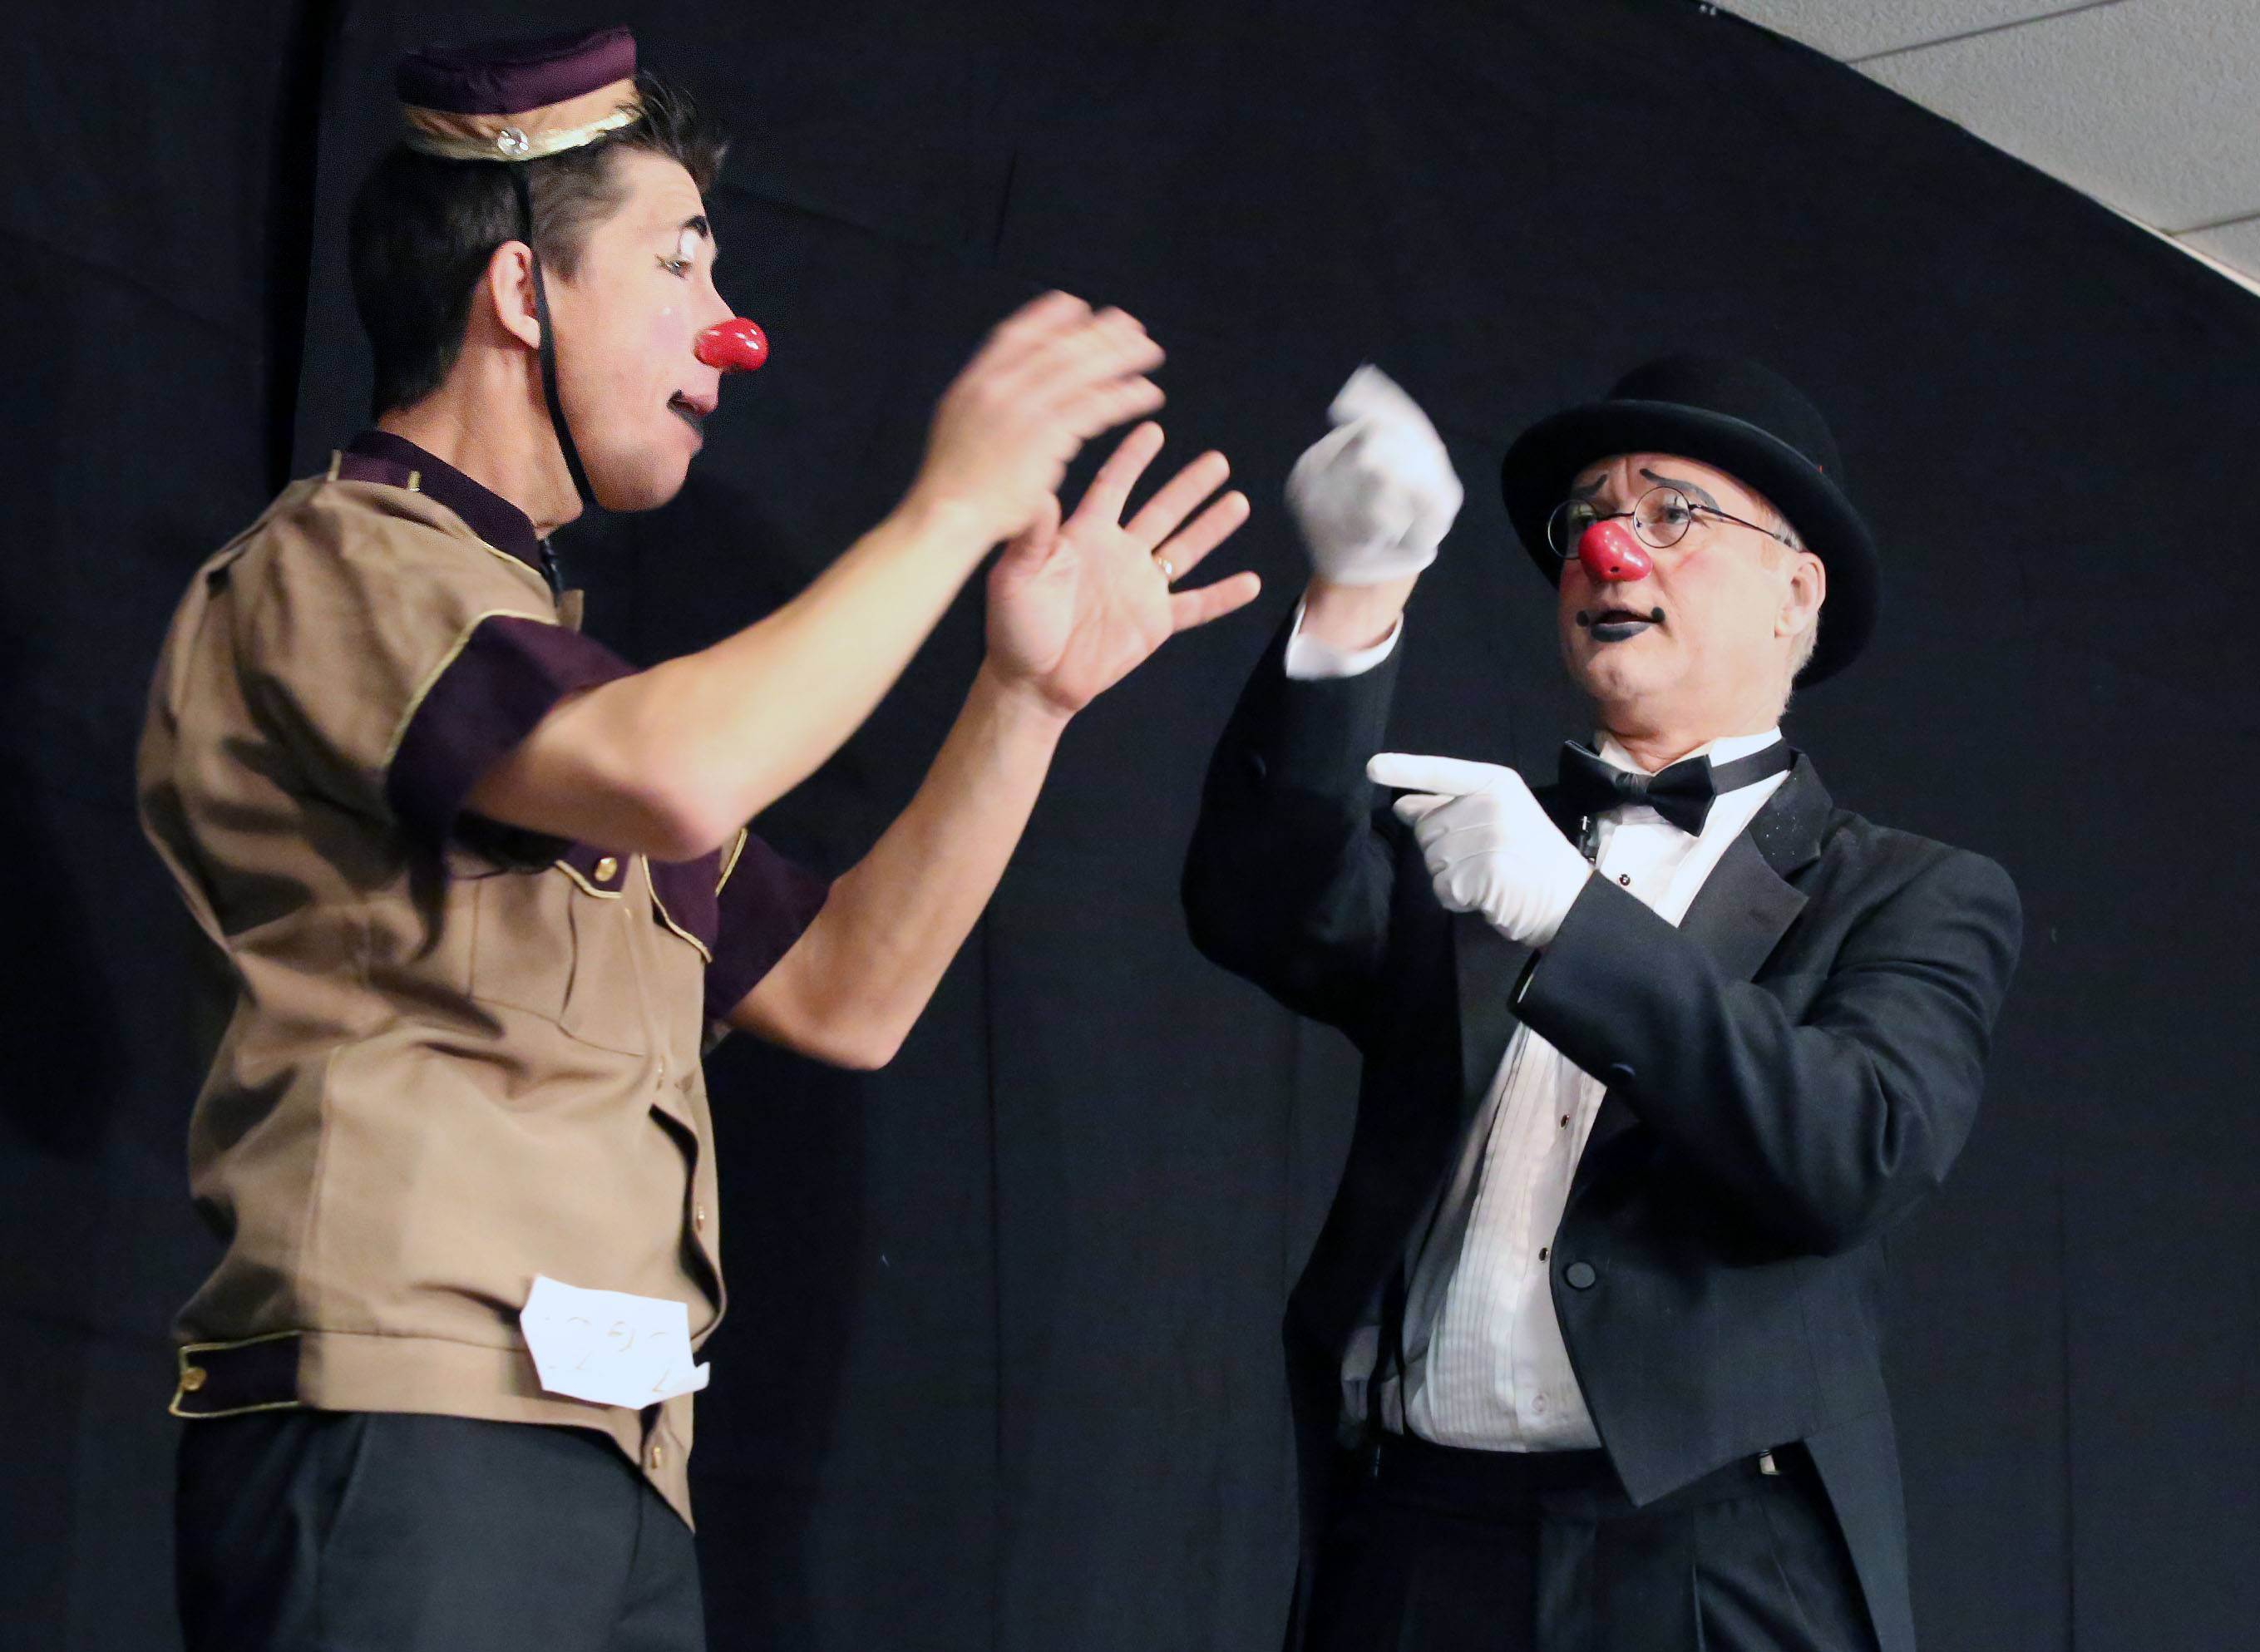 Jim Dixon from Kansas, also known as Soapy the clown, and Ken Noesgaard, right, of Canada, also known as Kenny the clown, take the stage Thursday.